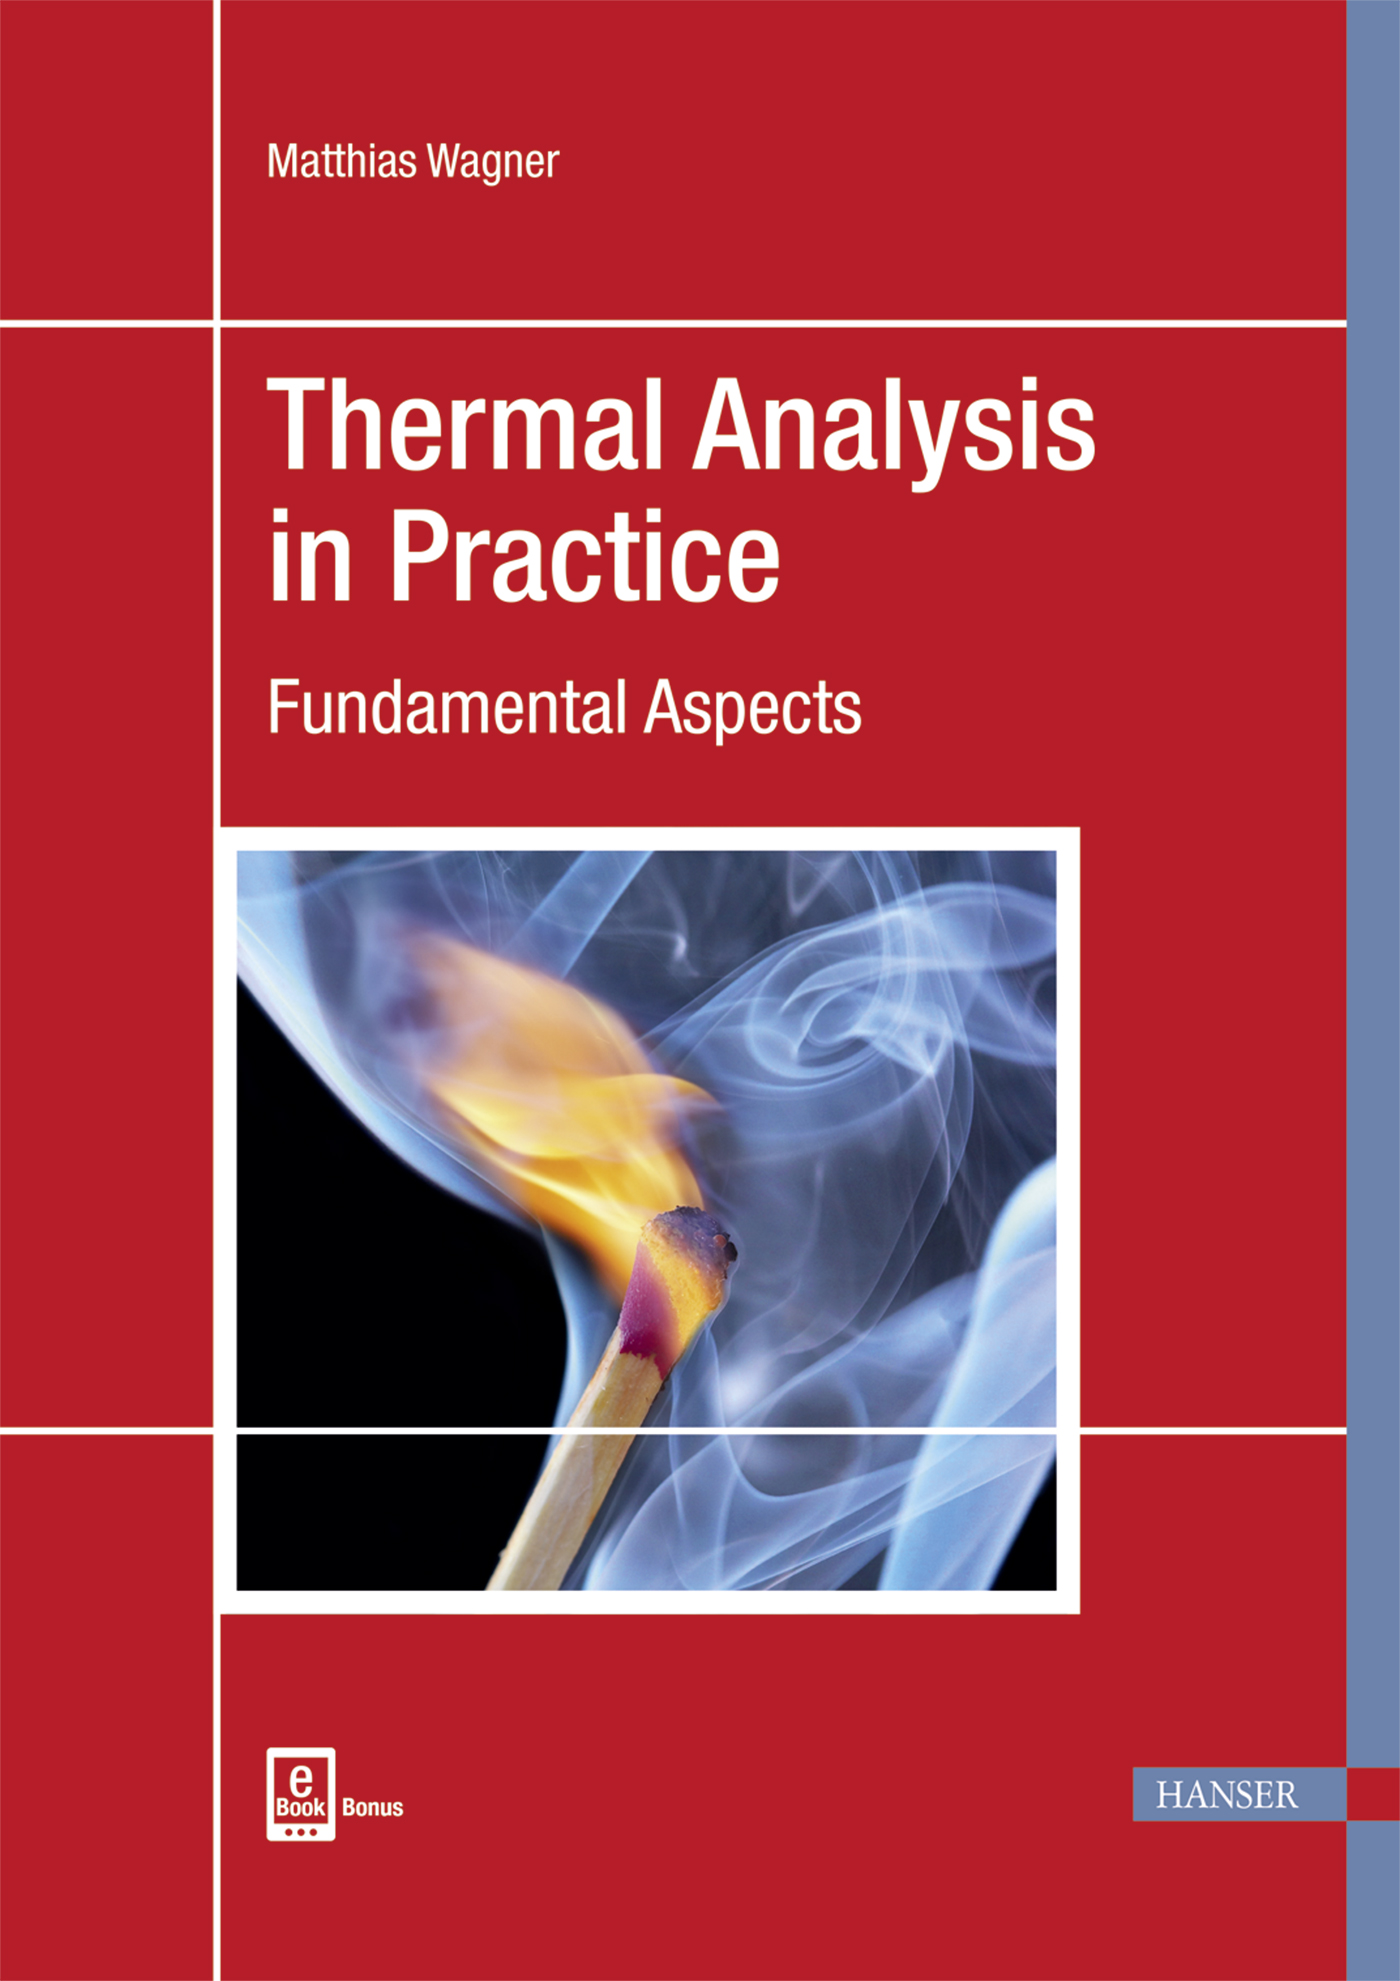 Thermal Analysis in Practice, 978-1-56990-643-9